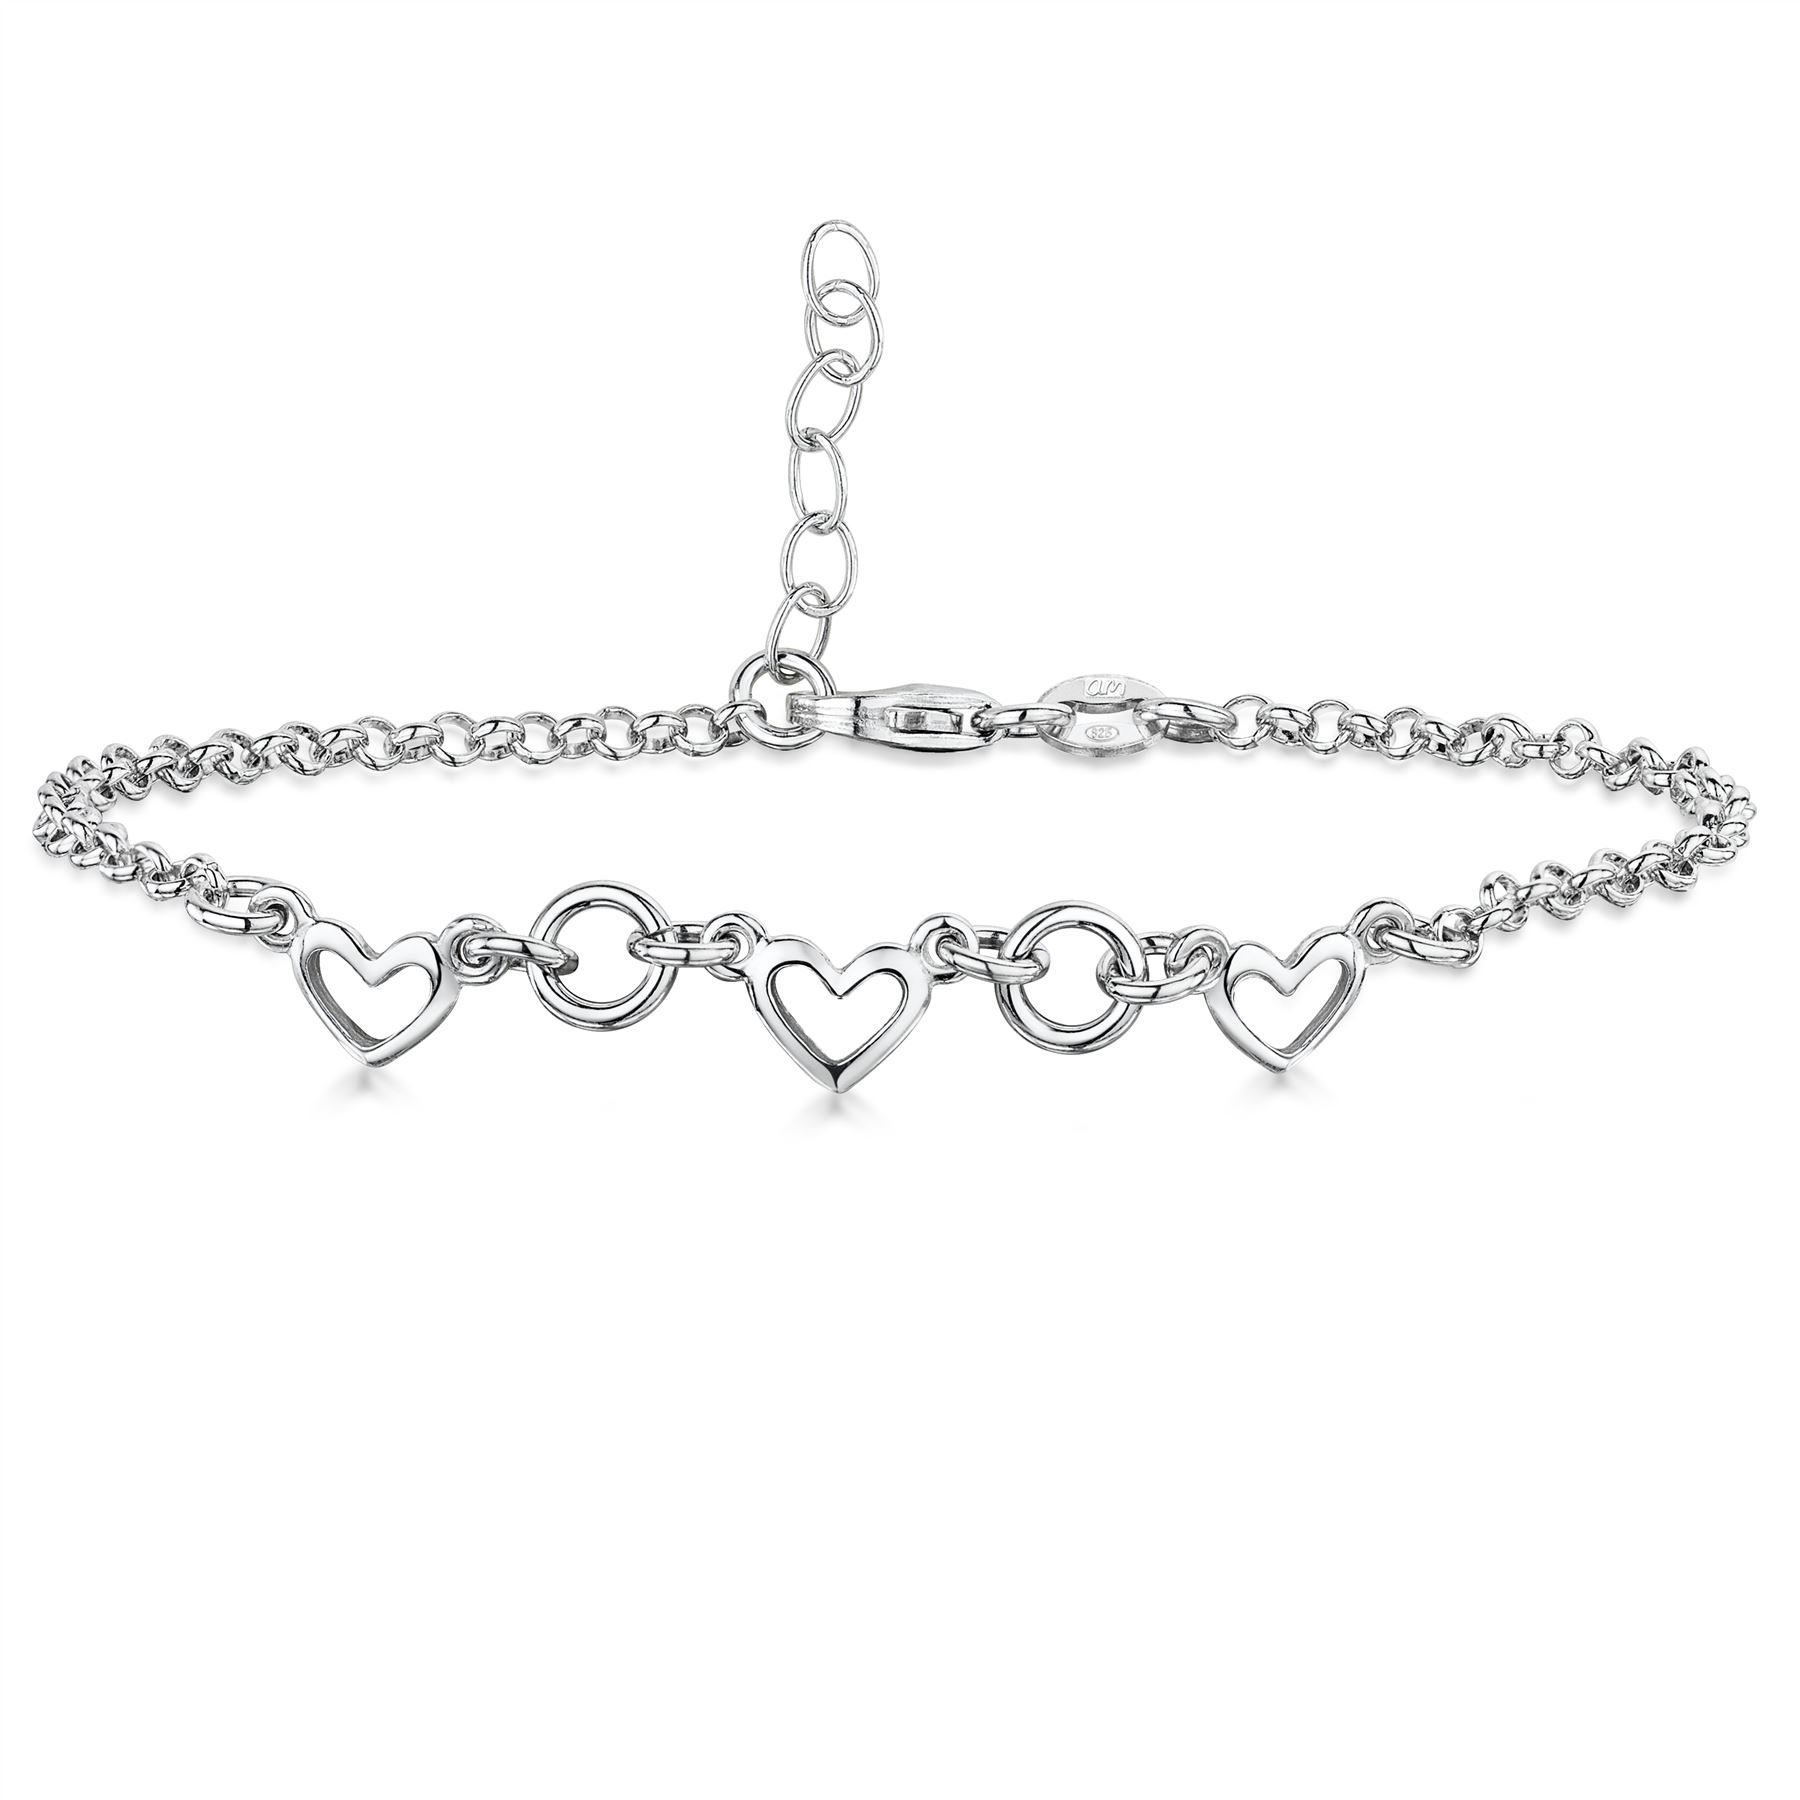 Amberta-Jewelry-925-Sterling-Silver-Adjustable-Anklet-for-Women-Made-in-Italy miniature 48